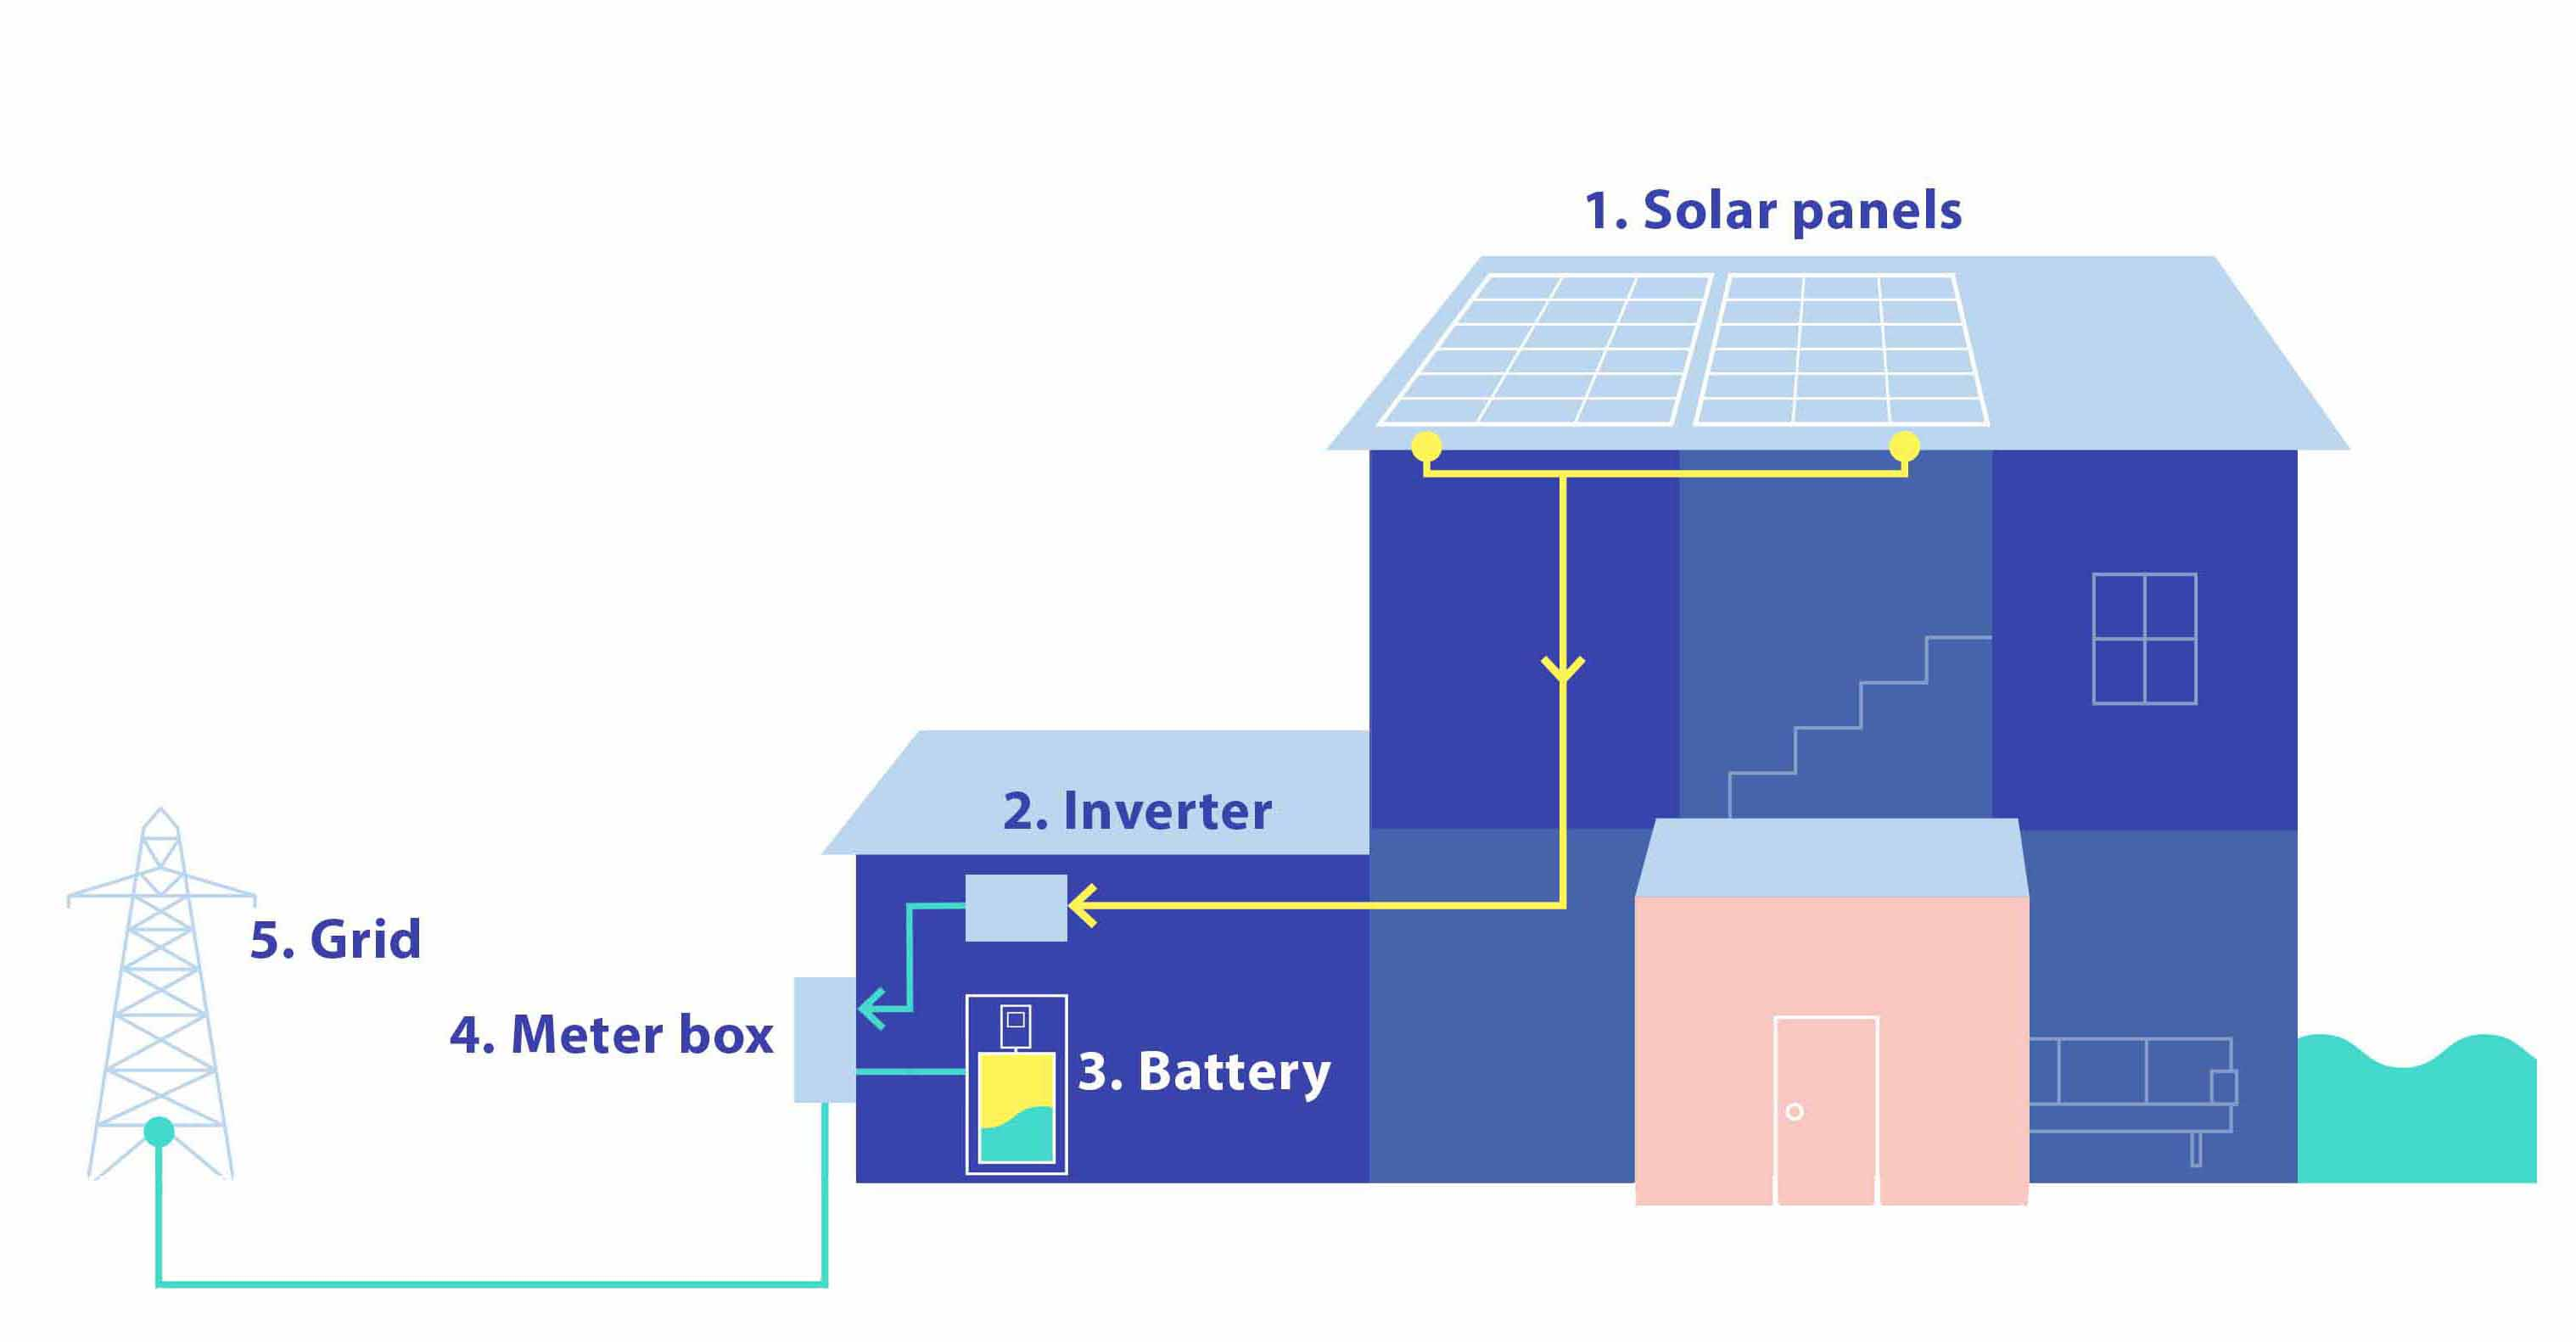 powerwall 2 wiring diagram 1971 camaro solar batteries tesla csiro smarts evergen ac coupled connections